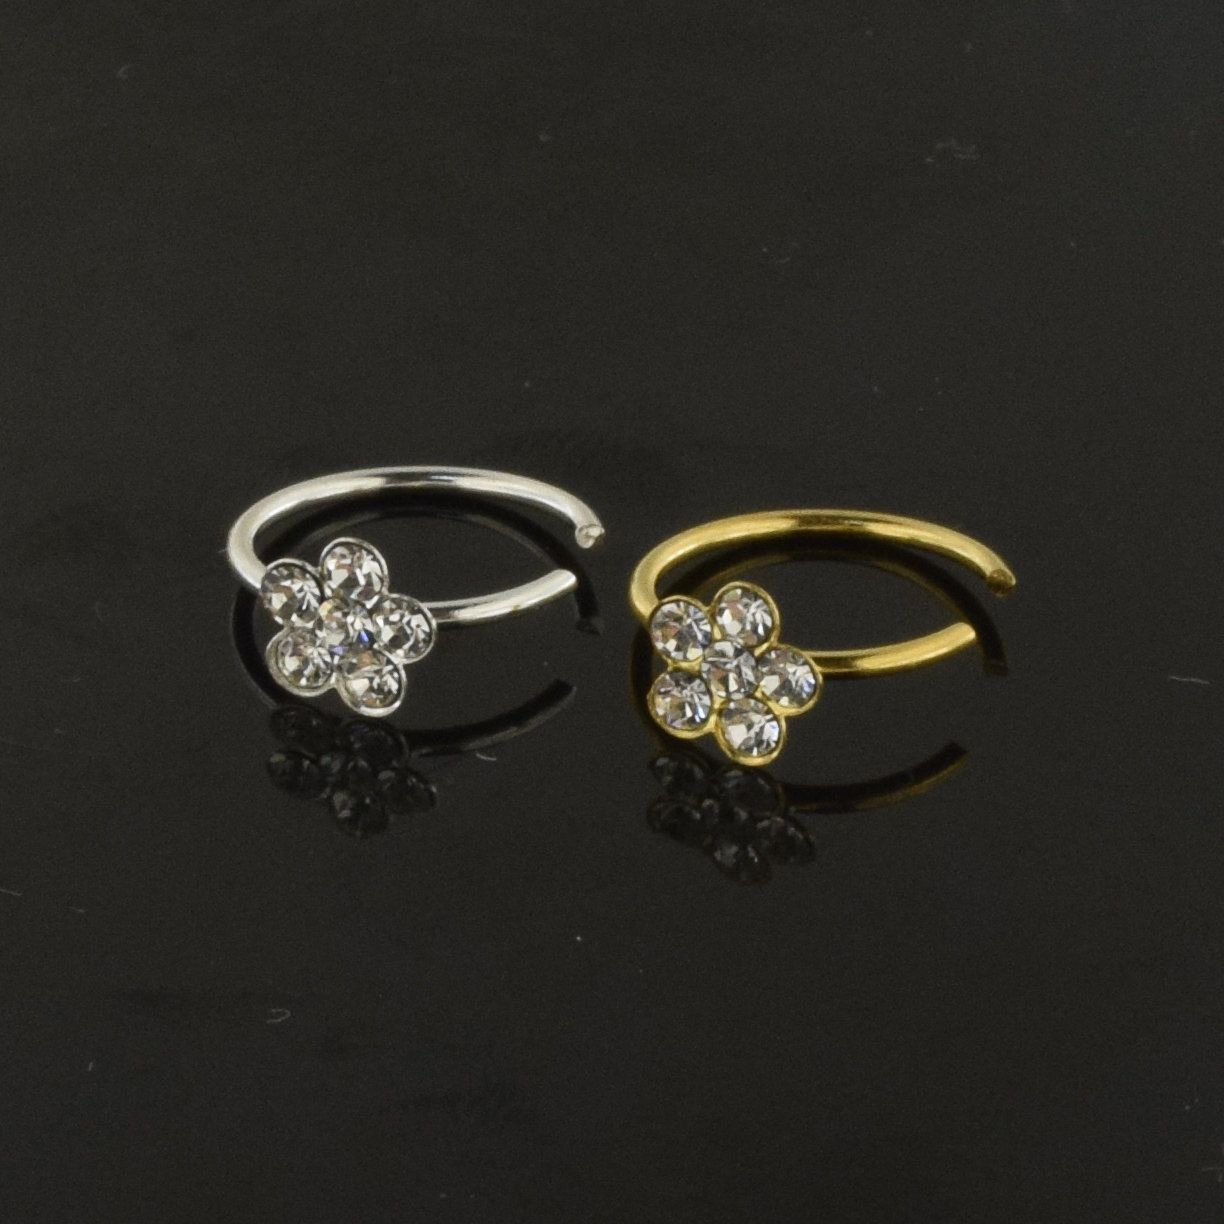 925 sterling silver flower nose ring with clear cubic